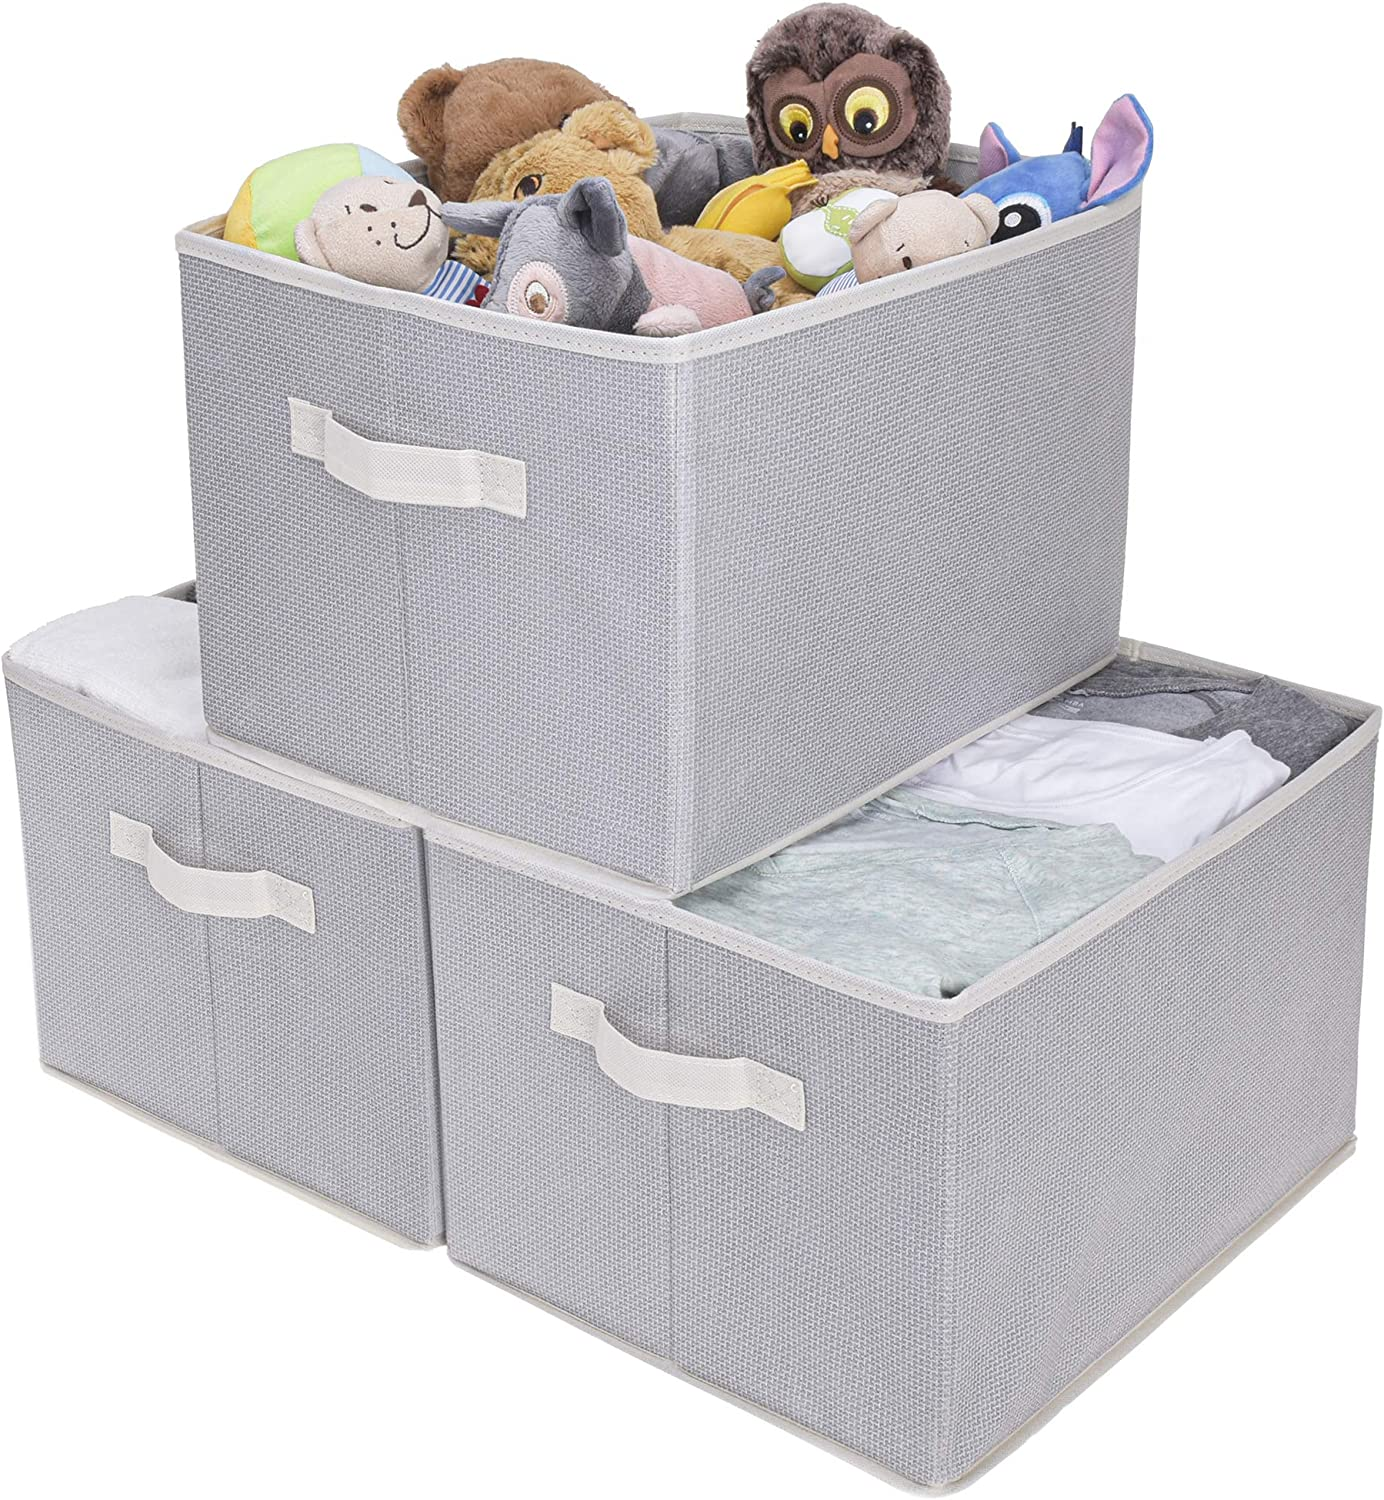 GRANNY SAYS Storage Bin for Shelves, Fabric Closet Organizer Shelf Cube Box with Handle Home Office Storage Baskets, Extra Large, Gray/Beige, 3-Pack